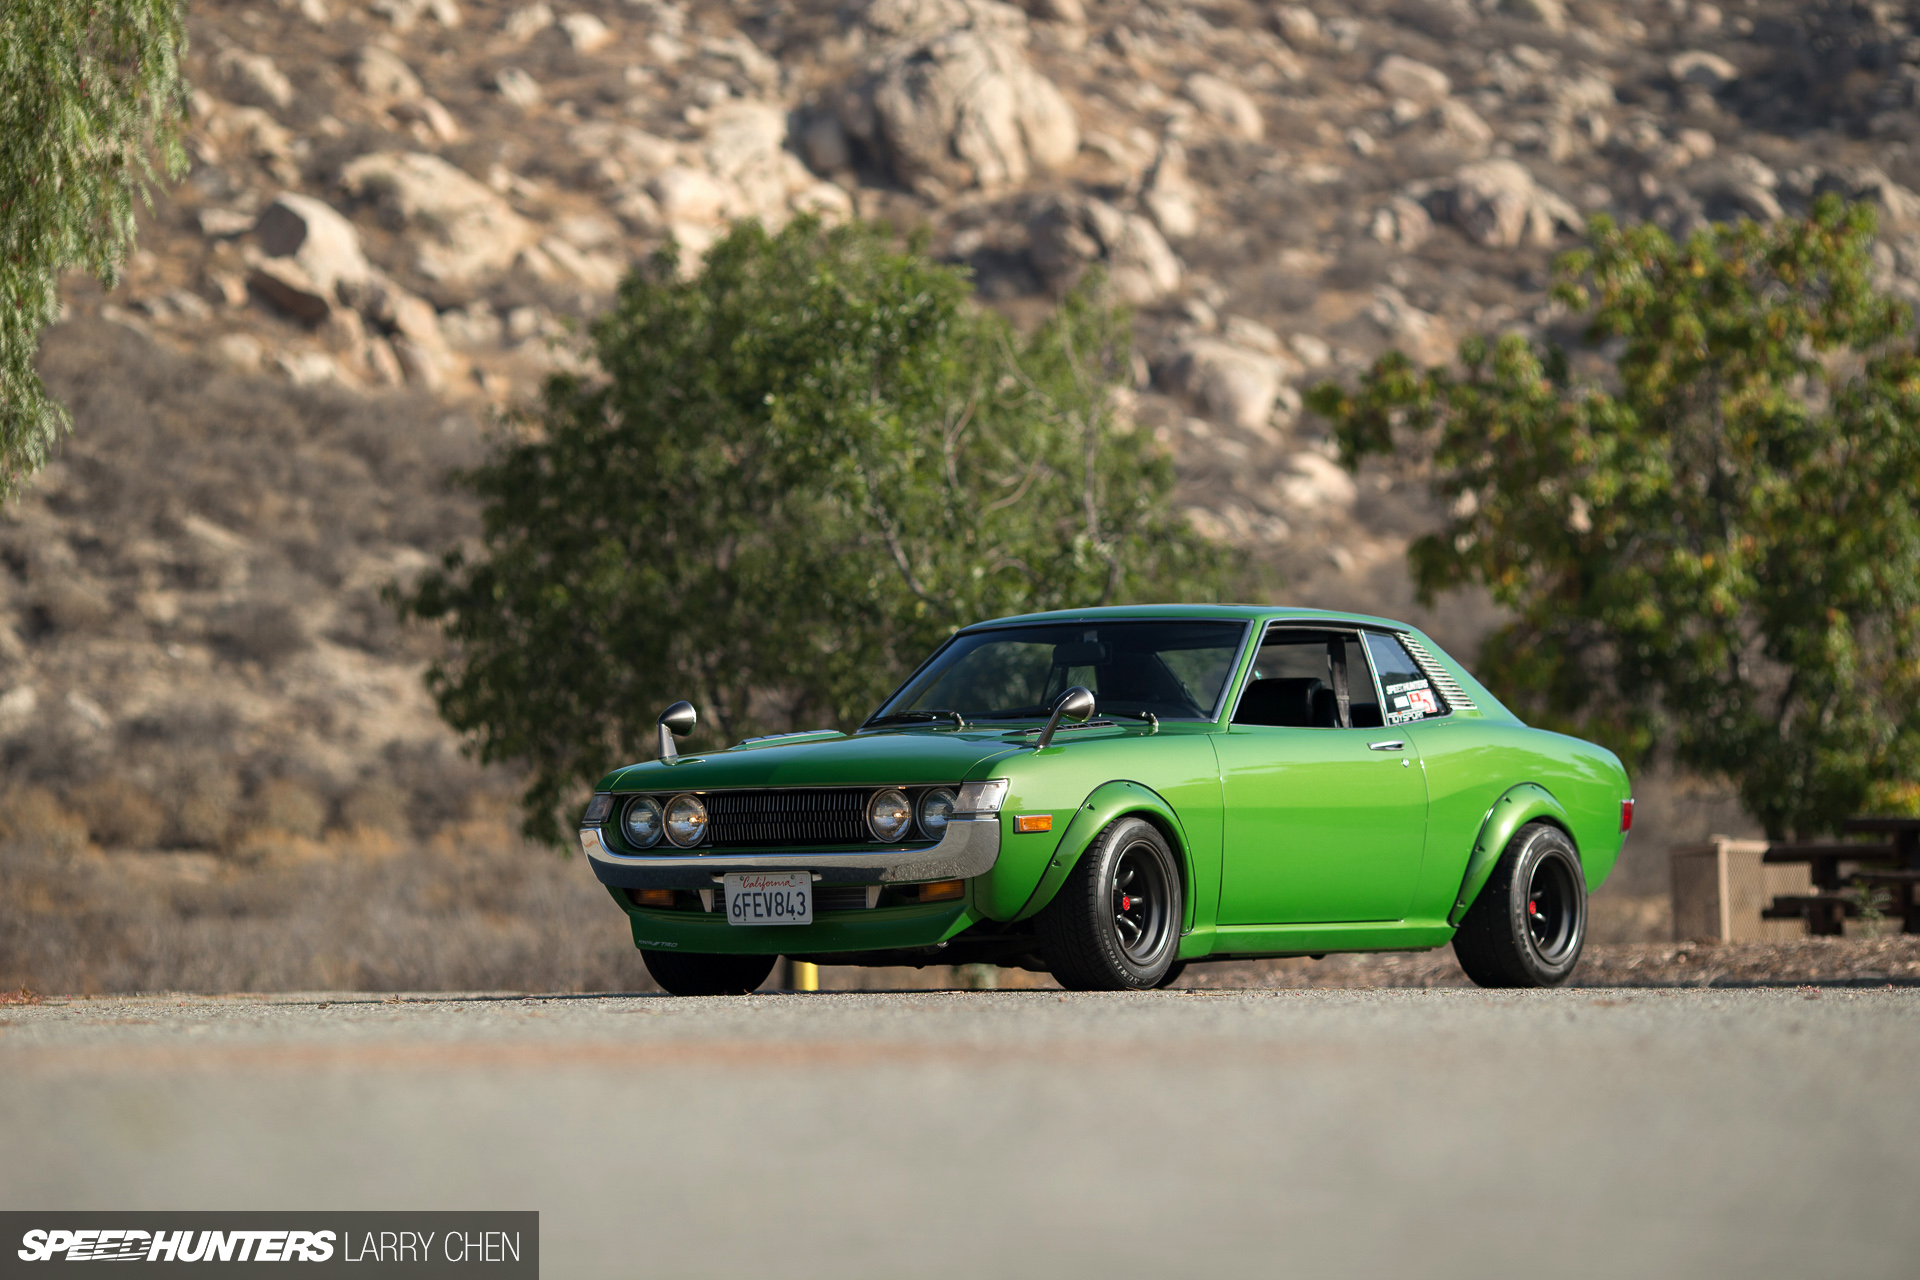 Neo Classic A Turbo Swapped 71 Celica Speedhunters